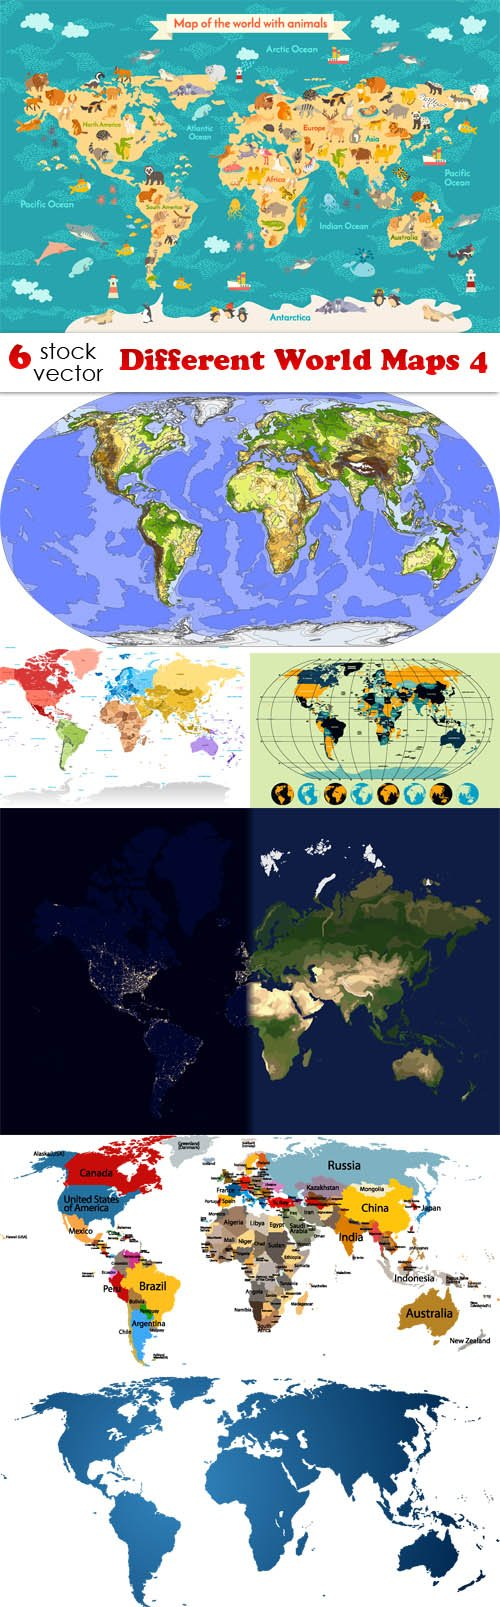 Vectors - Different World Maps 4